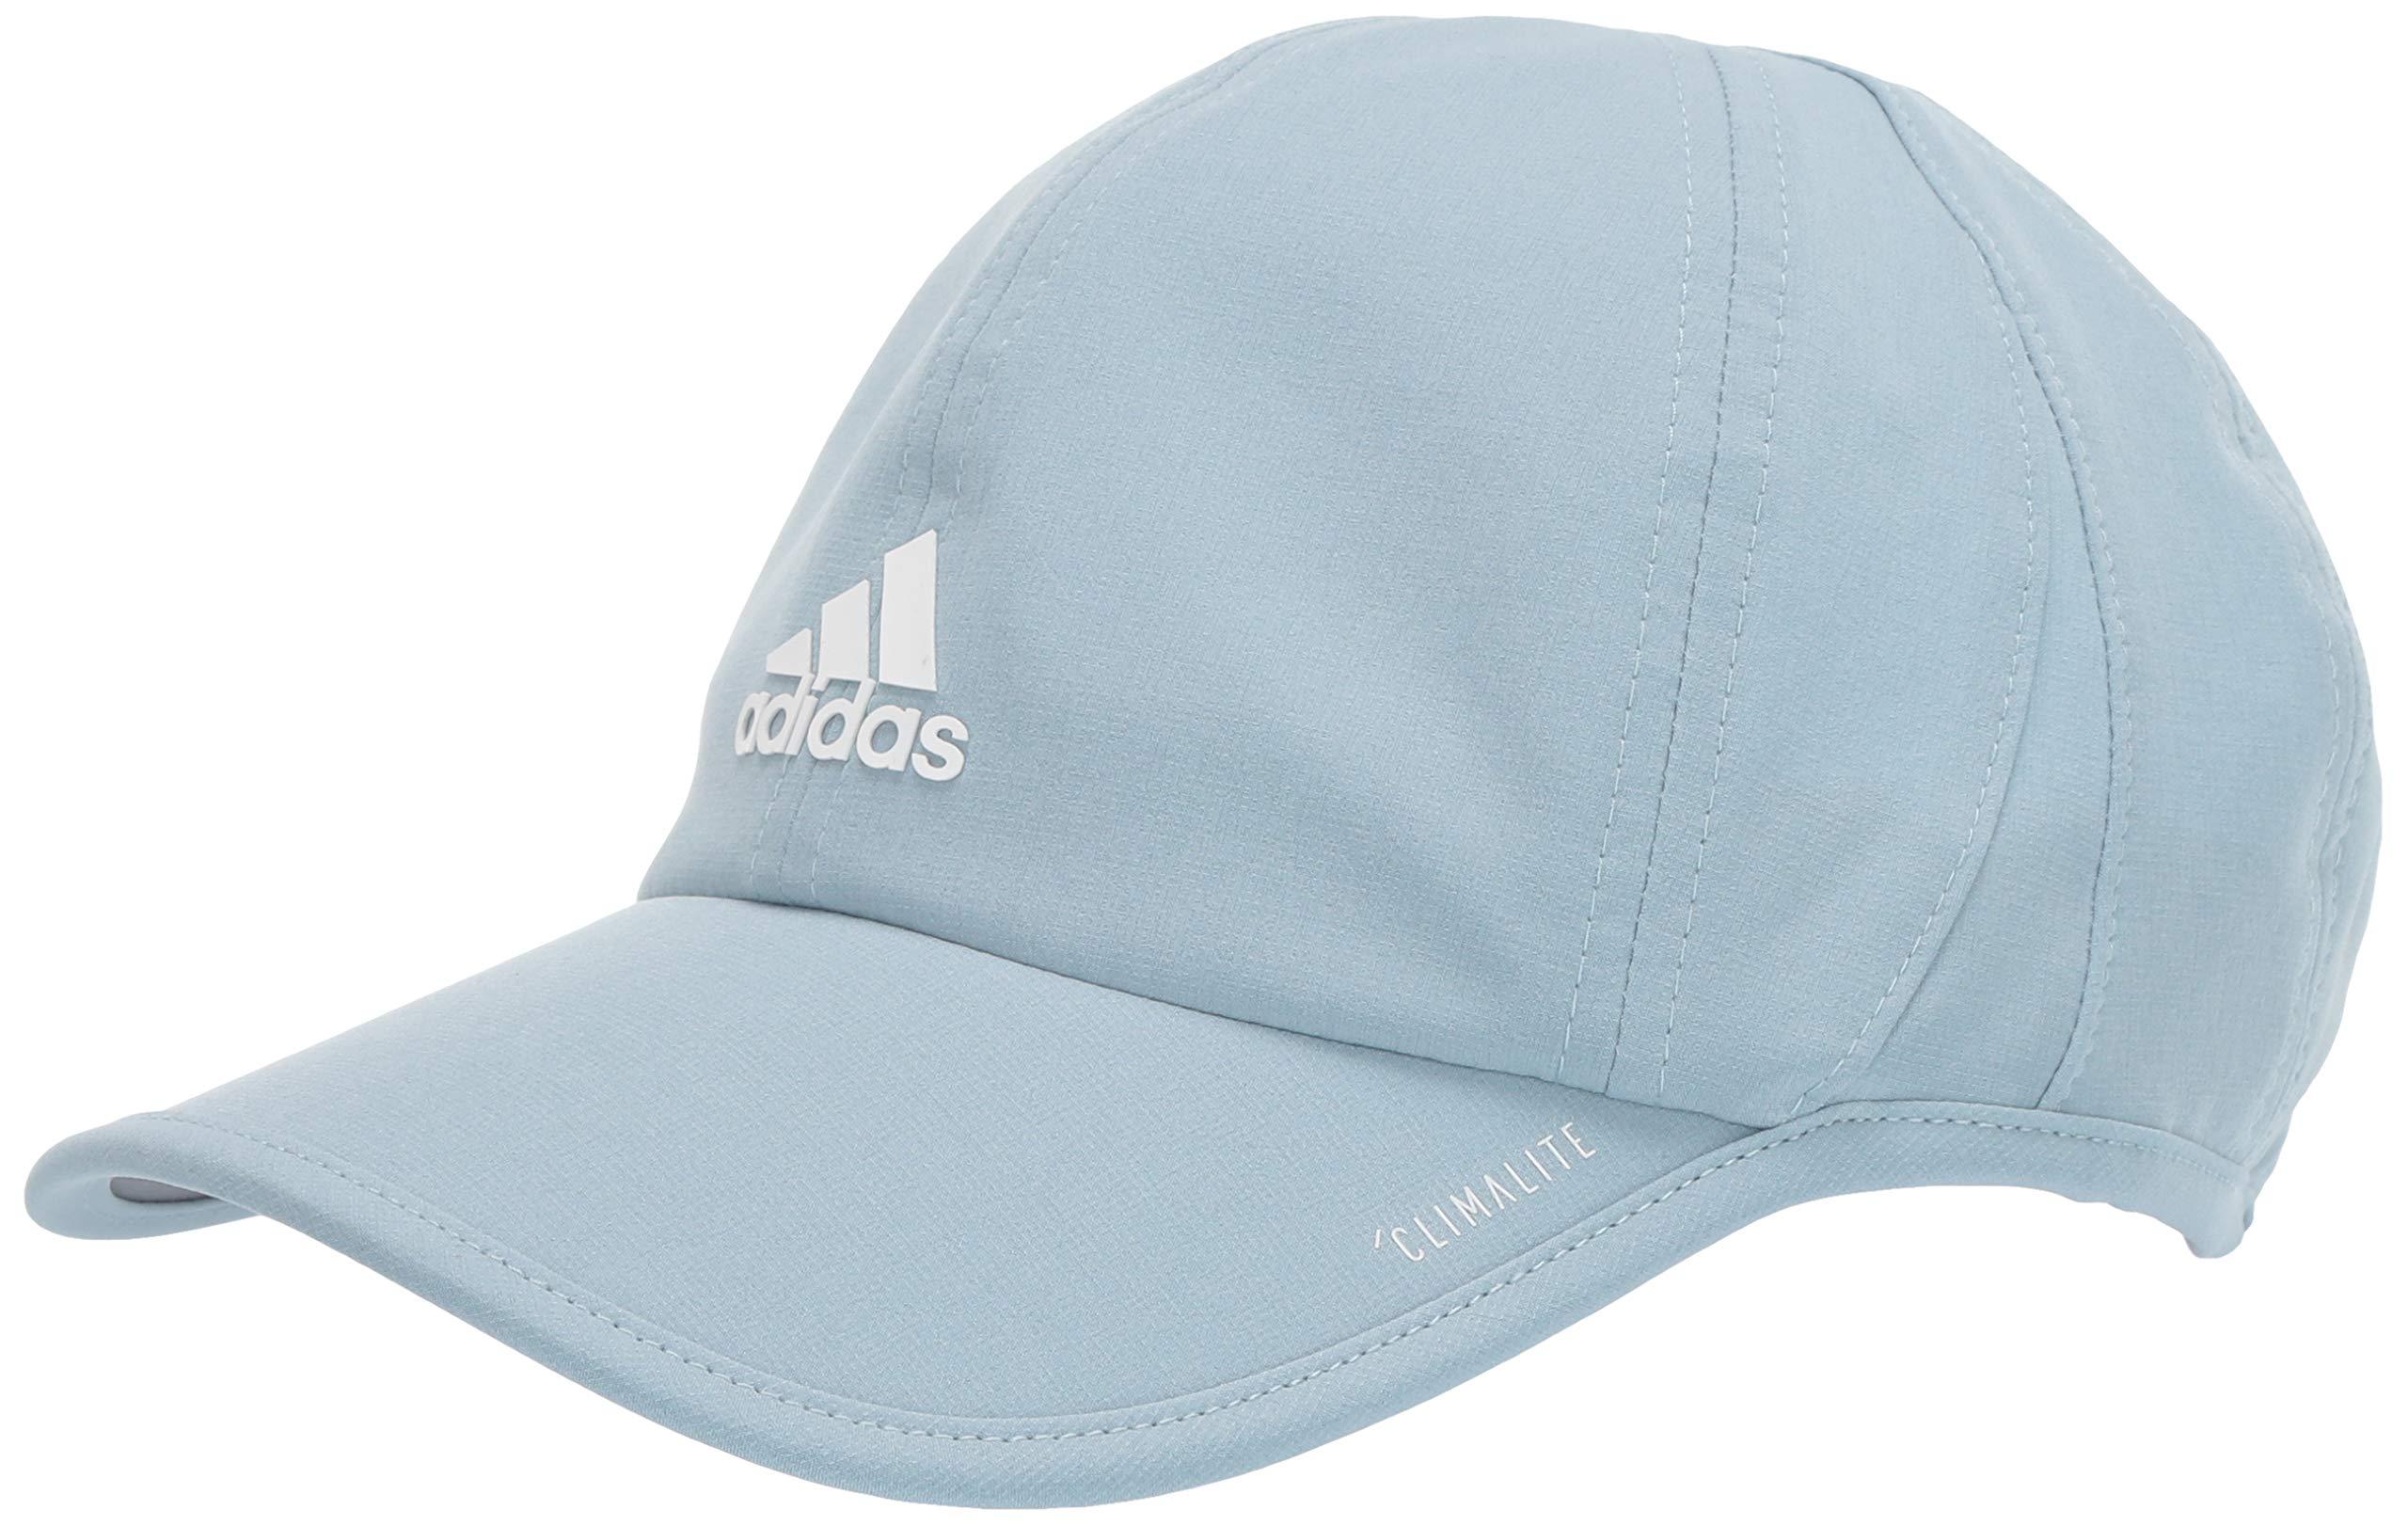 adidas Women's Superlite Relaxed Adjustable Performance Cap, Ash Grey/White, One Size